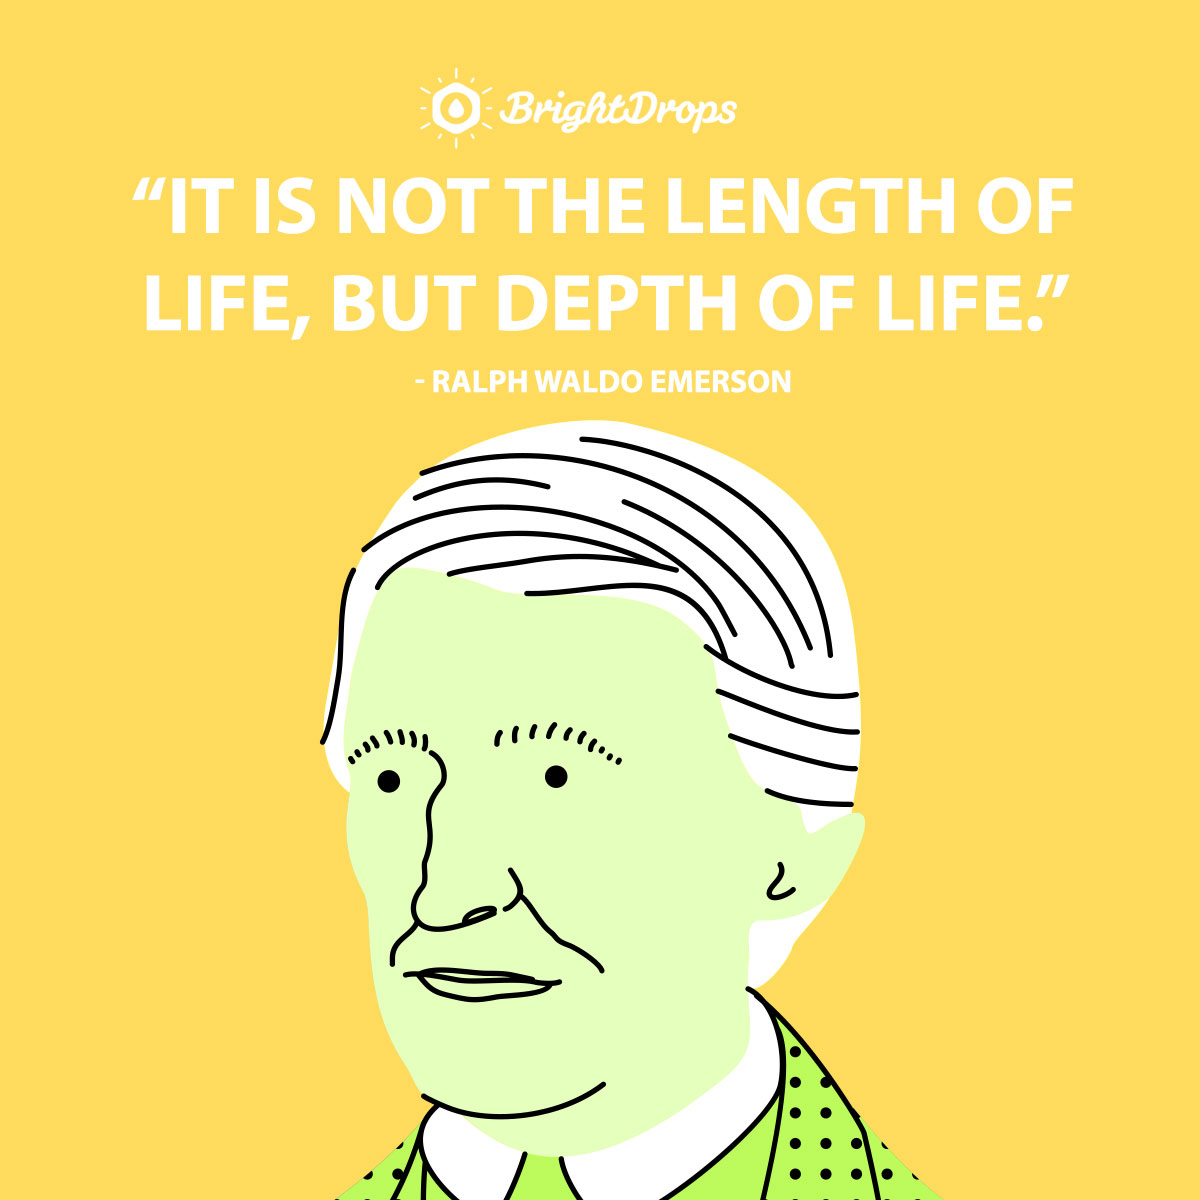 It is not the length of life, but depth of life. - Ralph Waldo Emerson